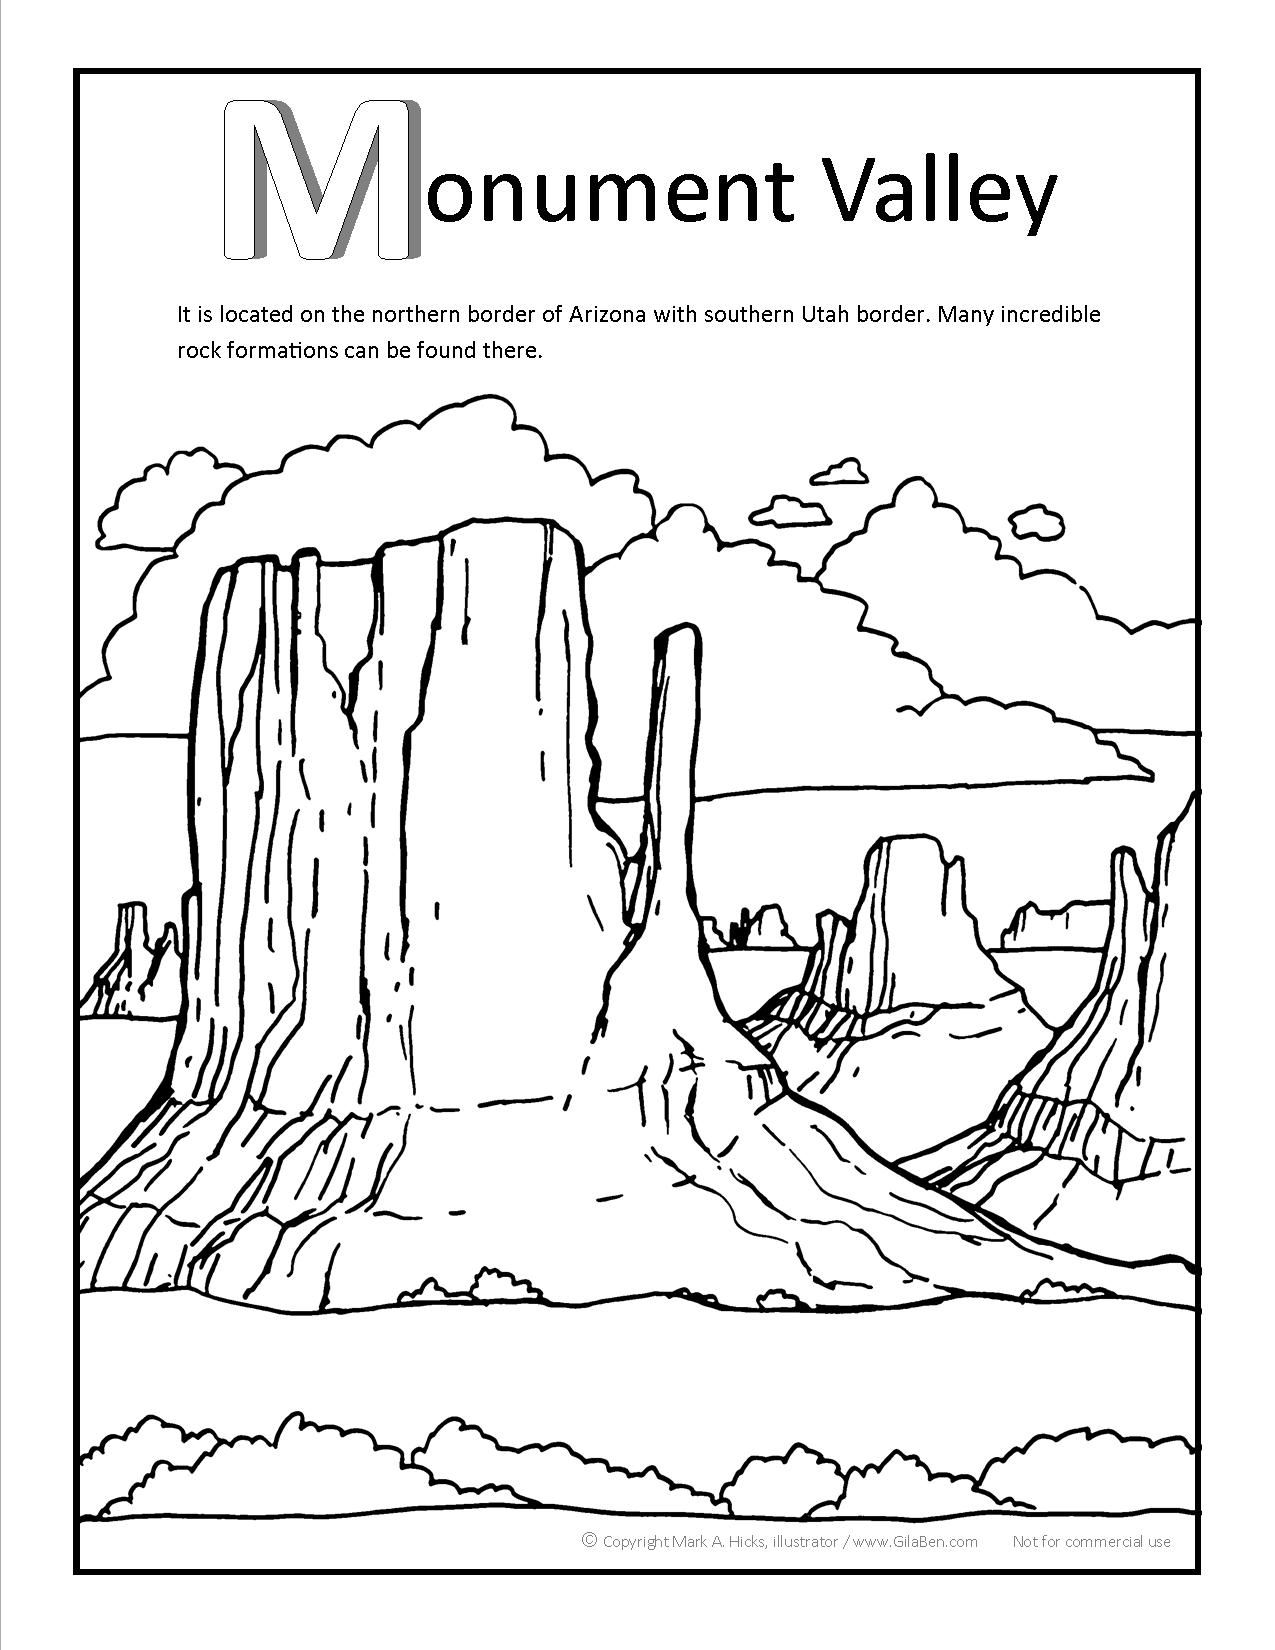 Monument Valley Coloring Page At Gilaben Com Coloring Pages